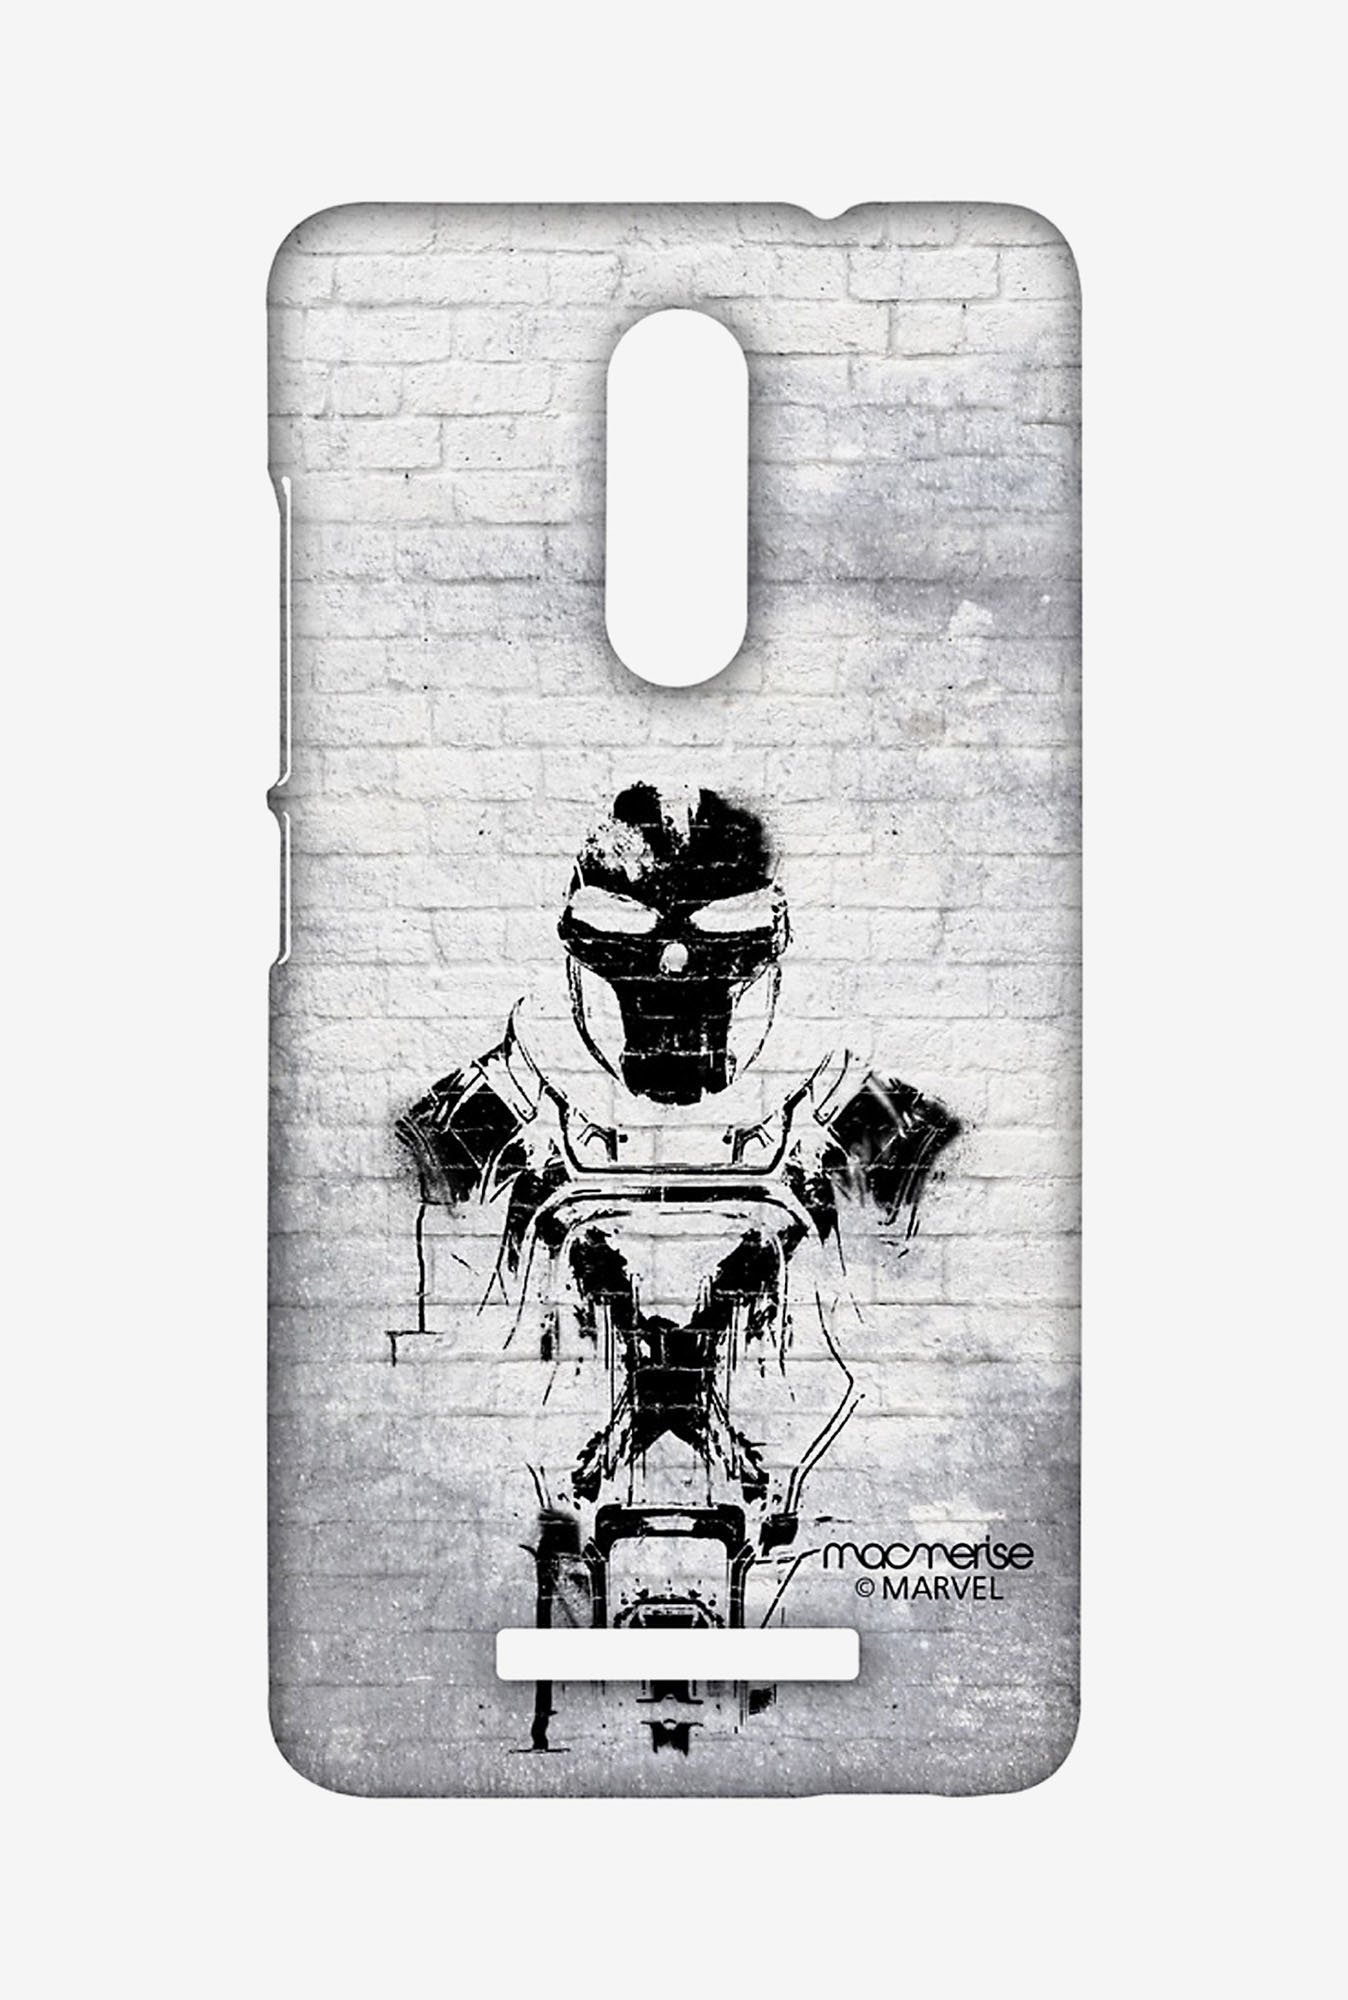 Macmerise XACN3SMM0392 Crossbones Brick Art Sublime Case for Xiaomi Redmi Note 3